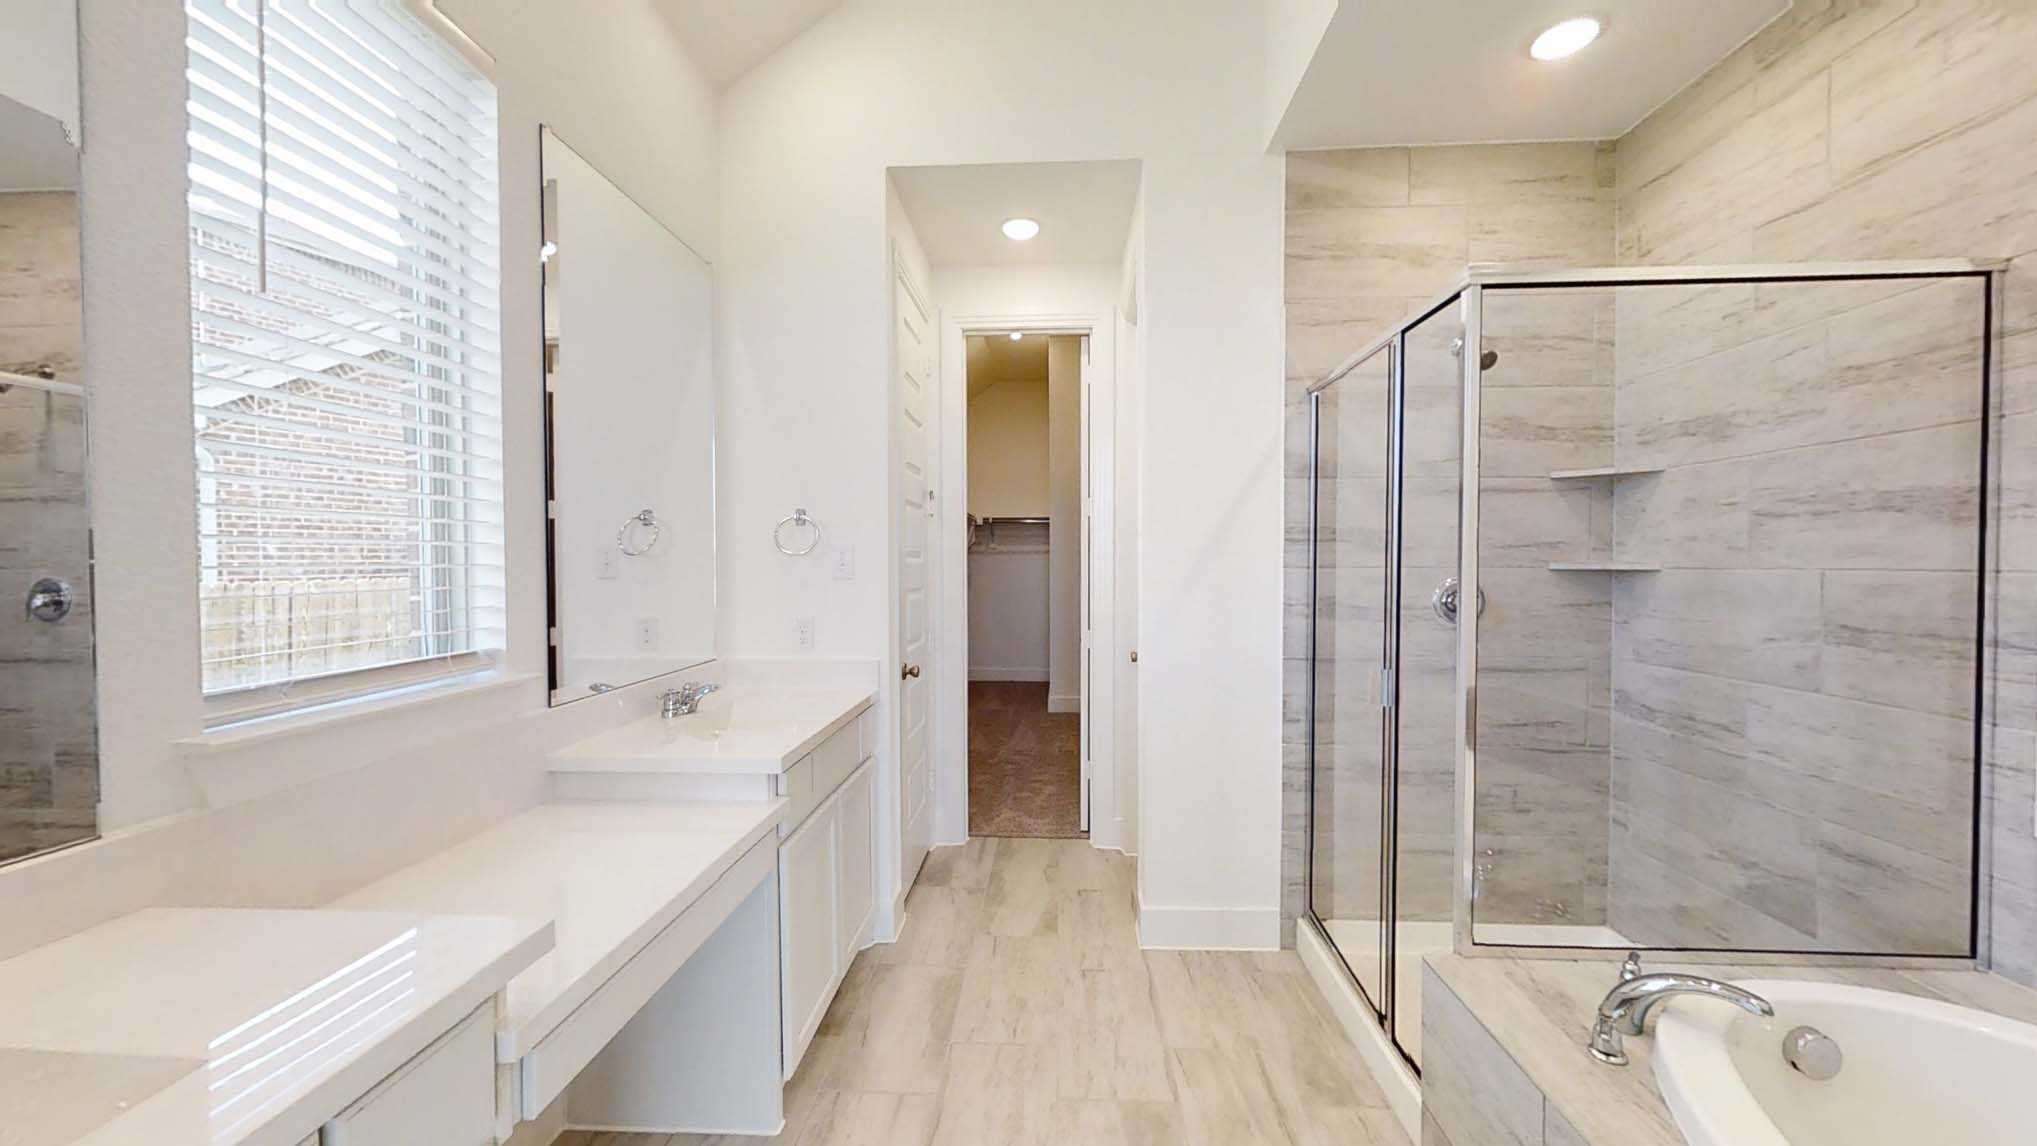 Bathroom featured in the Plan Glenhurst By Highland Homes in Dallas, TX